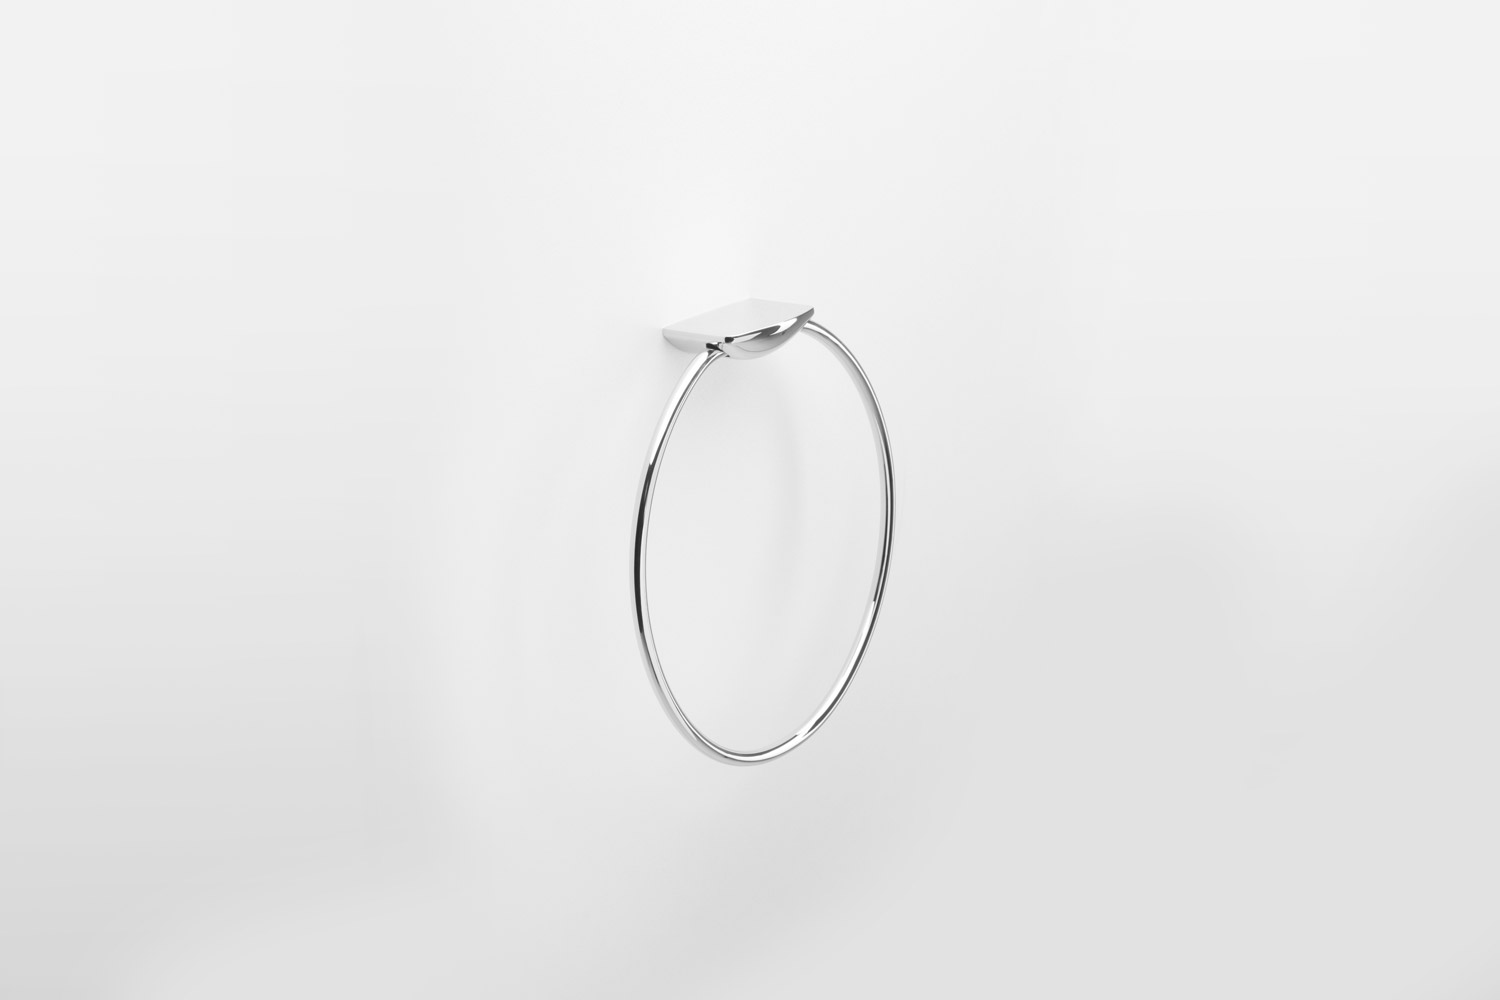 A5034400 Towel ring